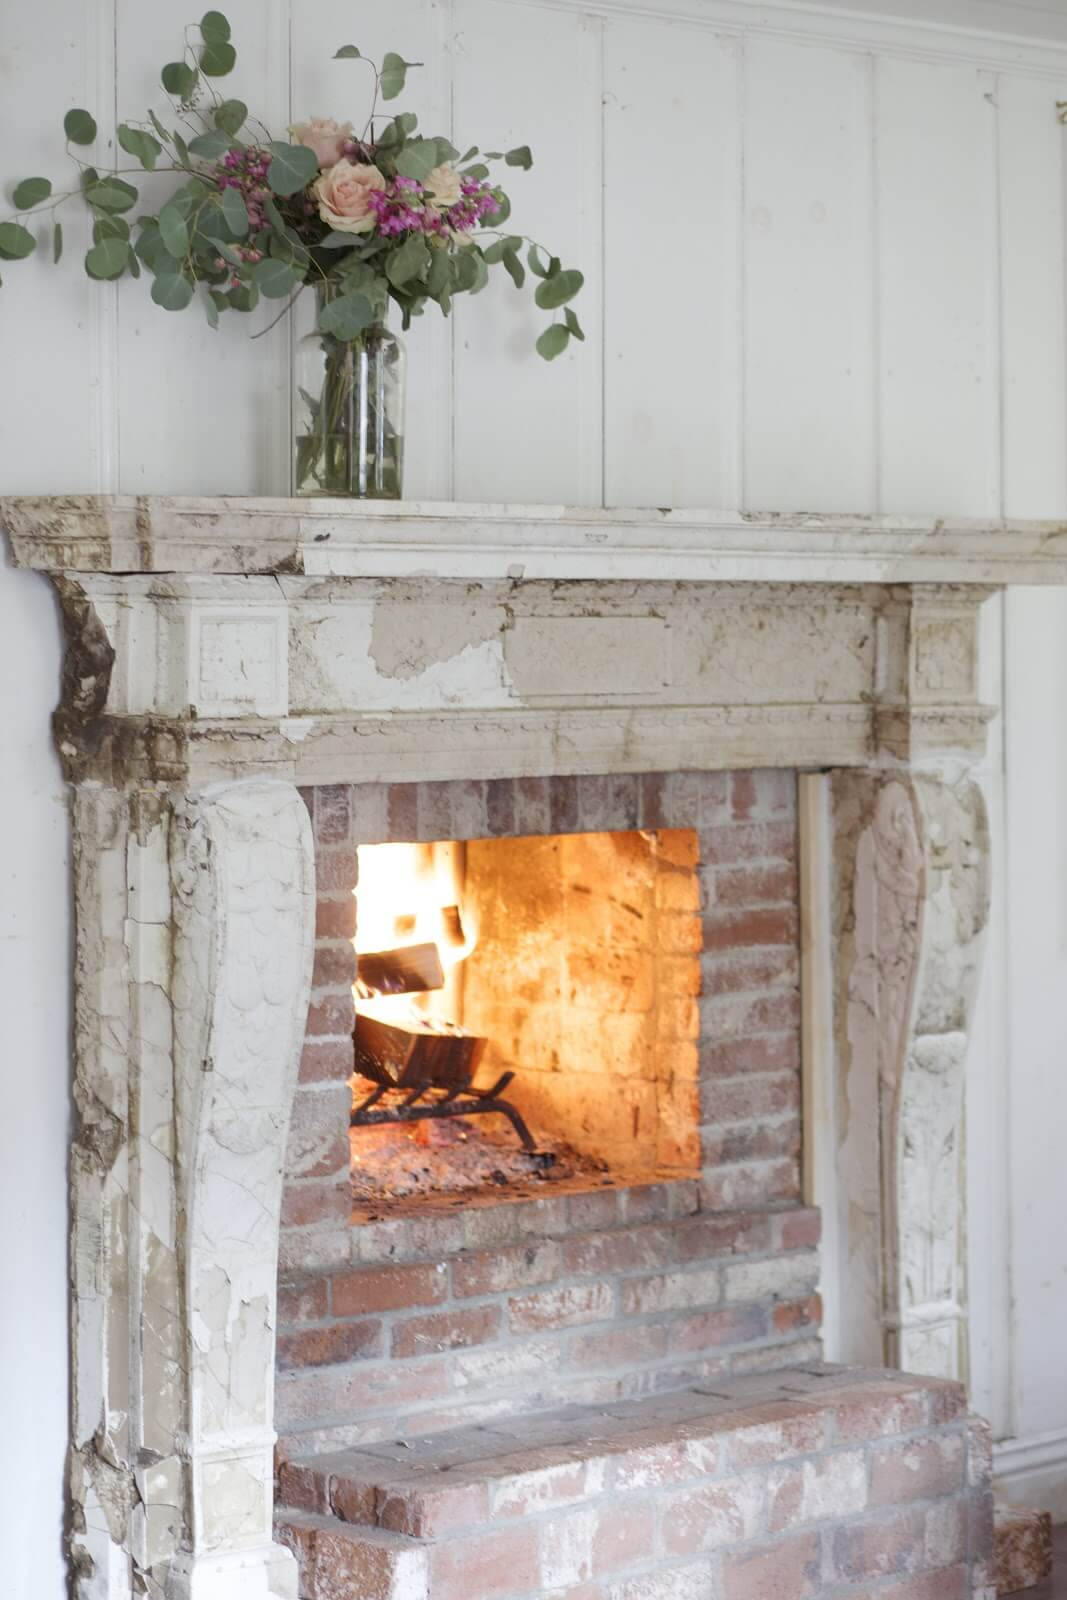 Distressed Wood Burning Fireplace with Flowers